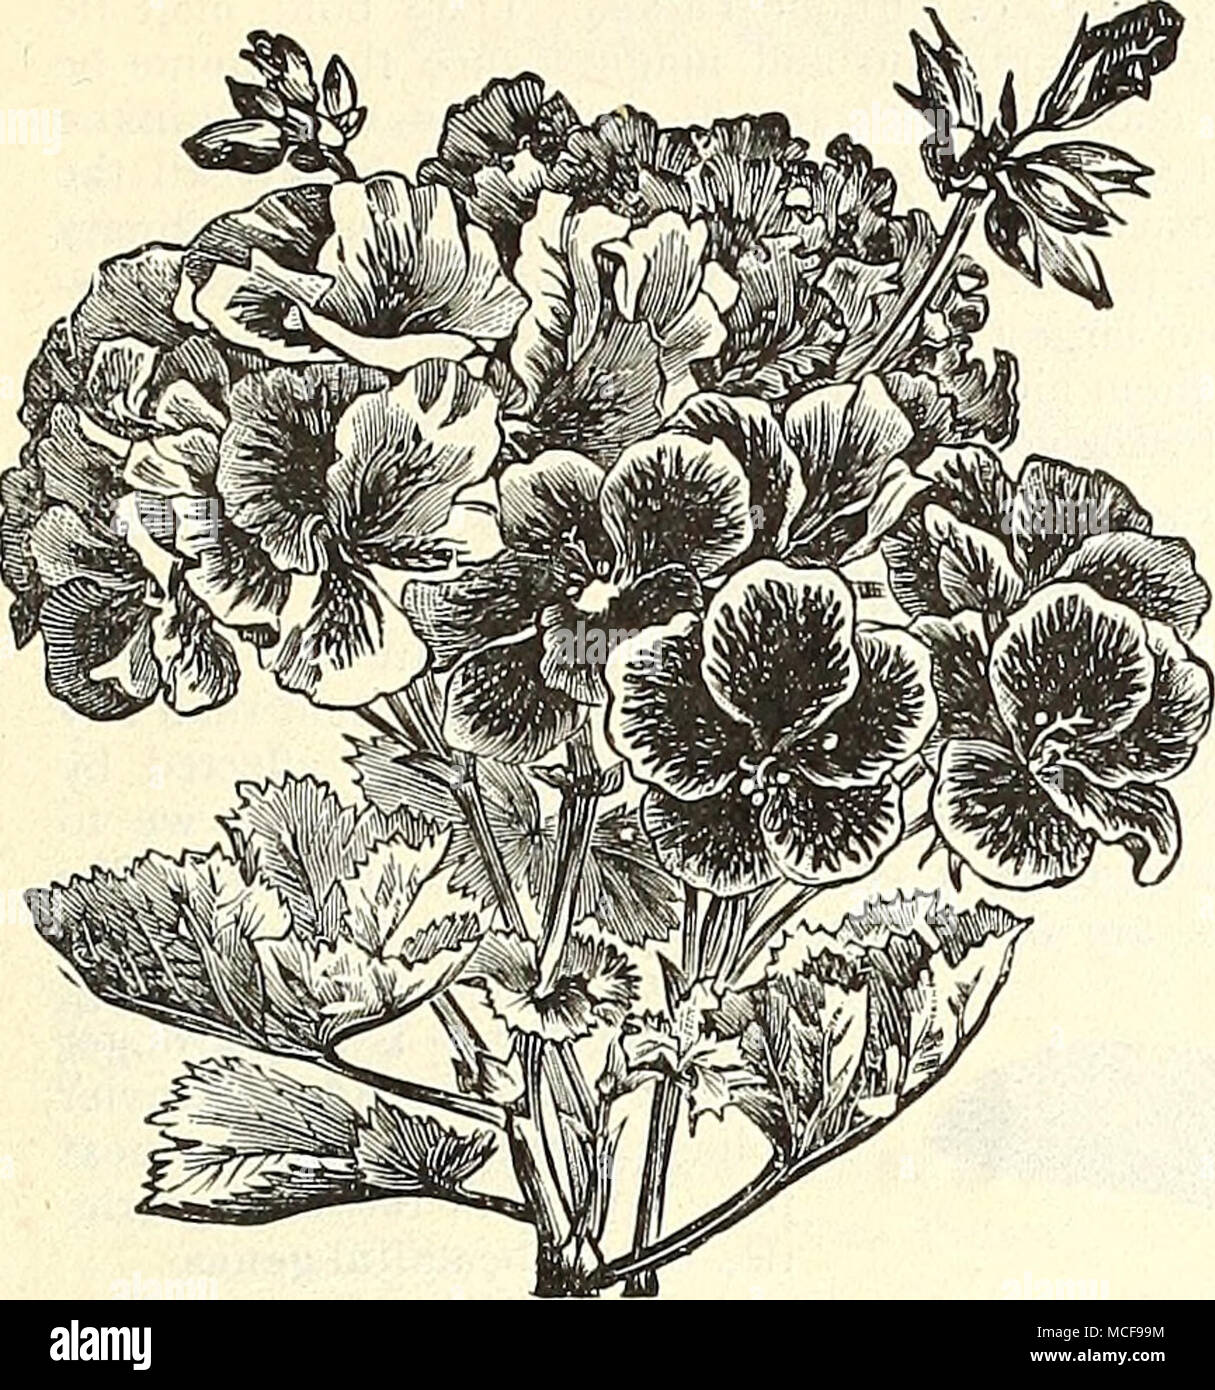 Pelargonium Offered On Page 140 Pennisetum Rlieppelianum